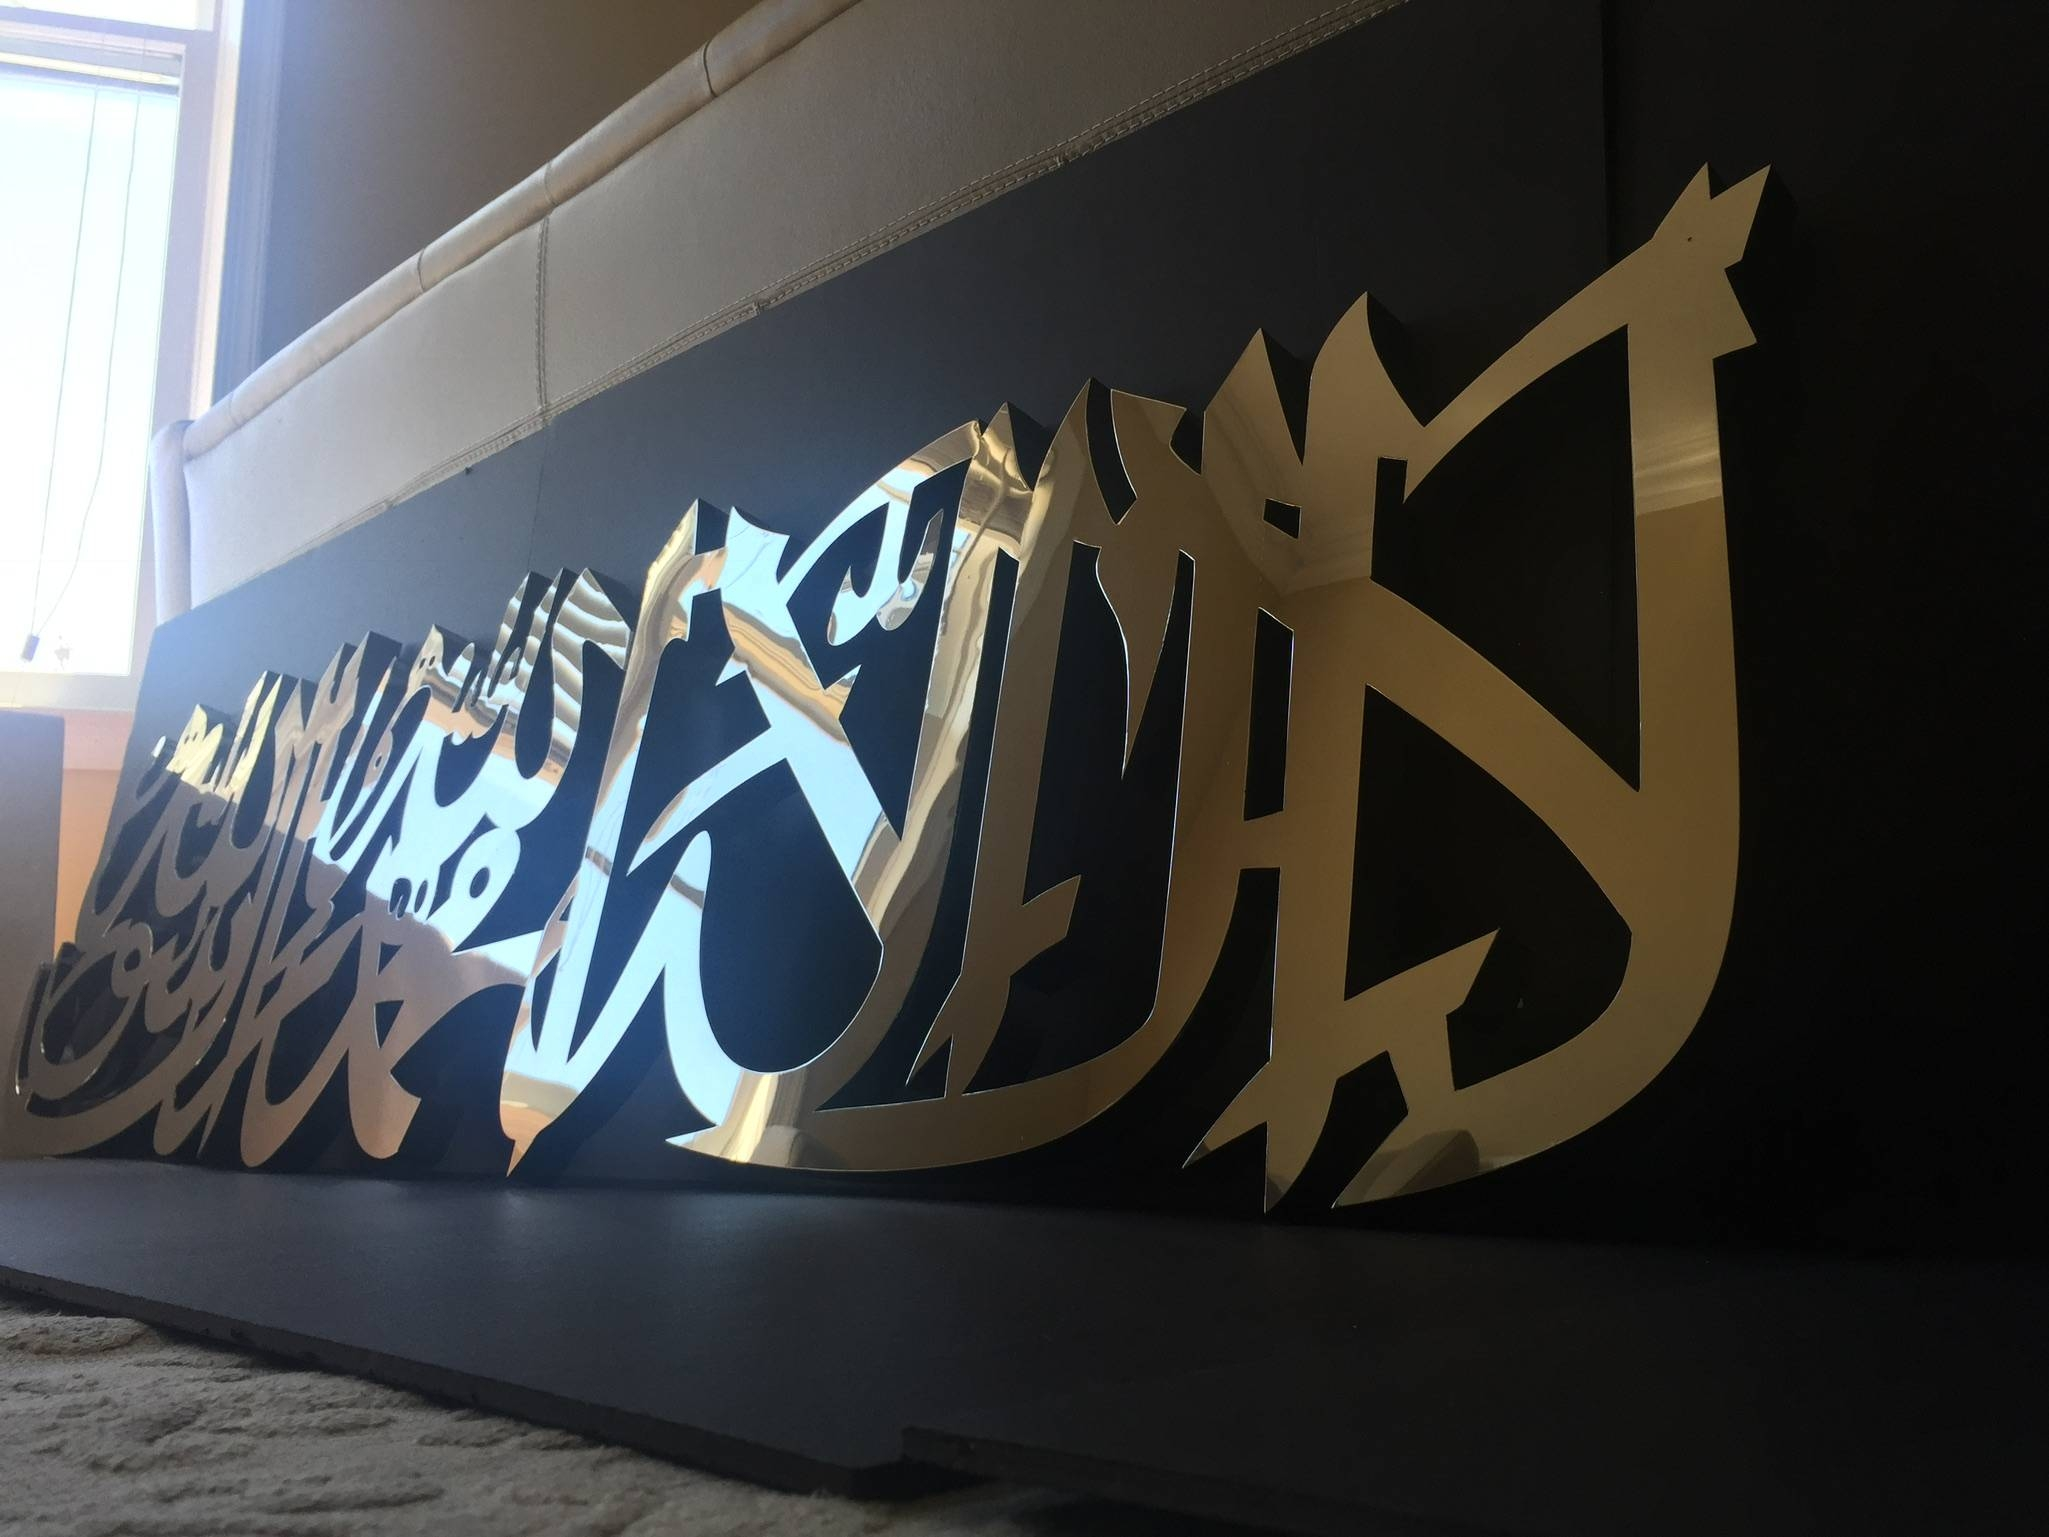 Shahada / Kalima Grand Modern Islamic Wall Art Calligraphy With Regard To Most Popular 3d Islamic Wall Art (View 3 of 20)